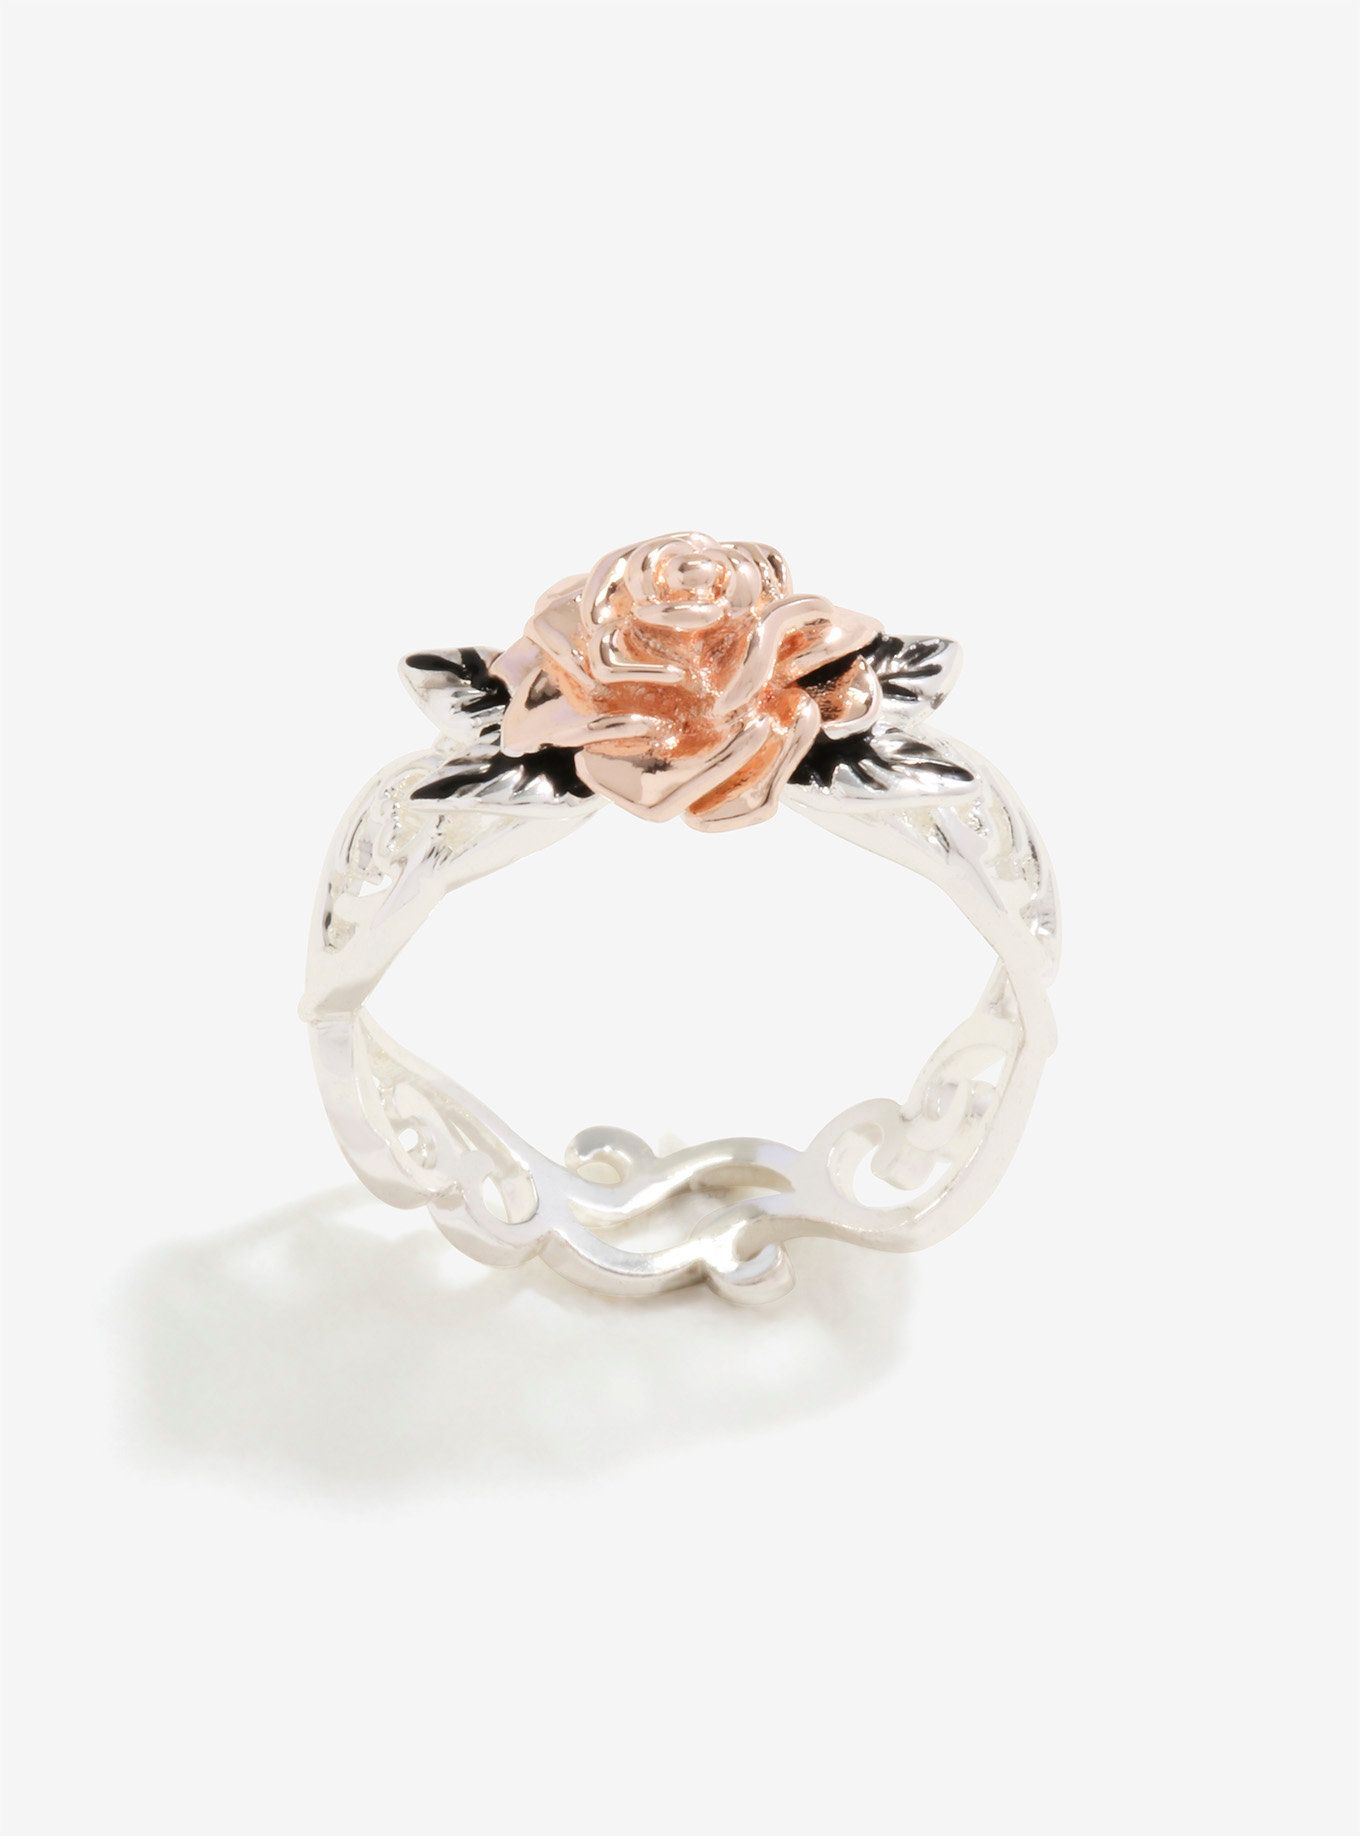 vert rings martha love gold white engagement pink kotlar weddings diamonds we colored harry stewart